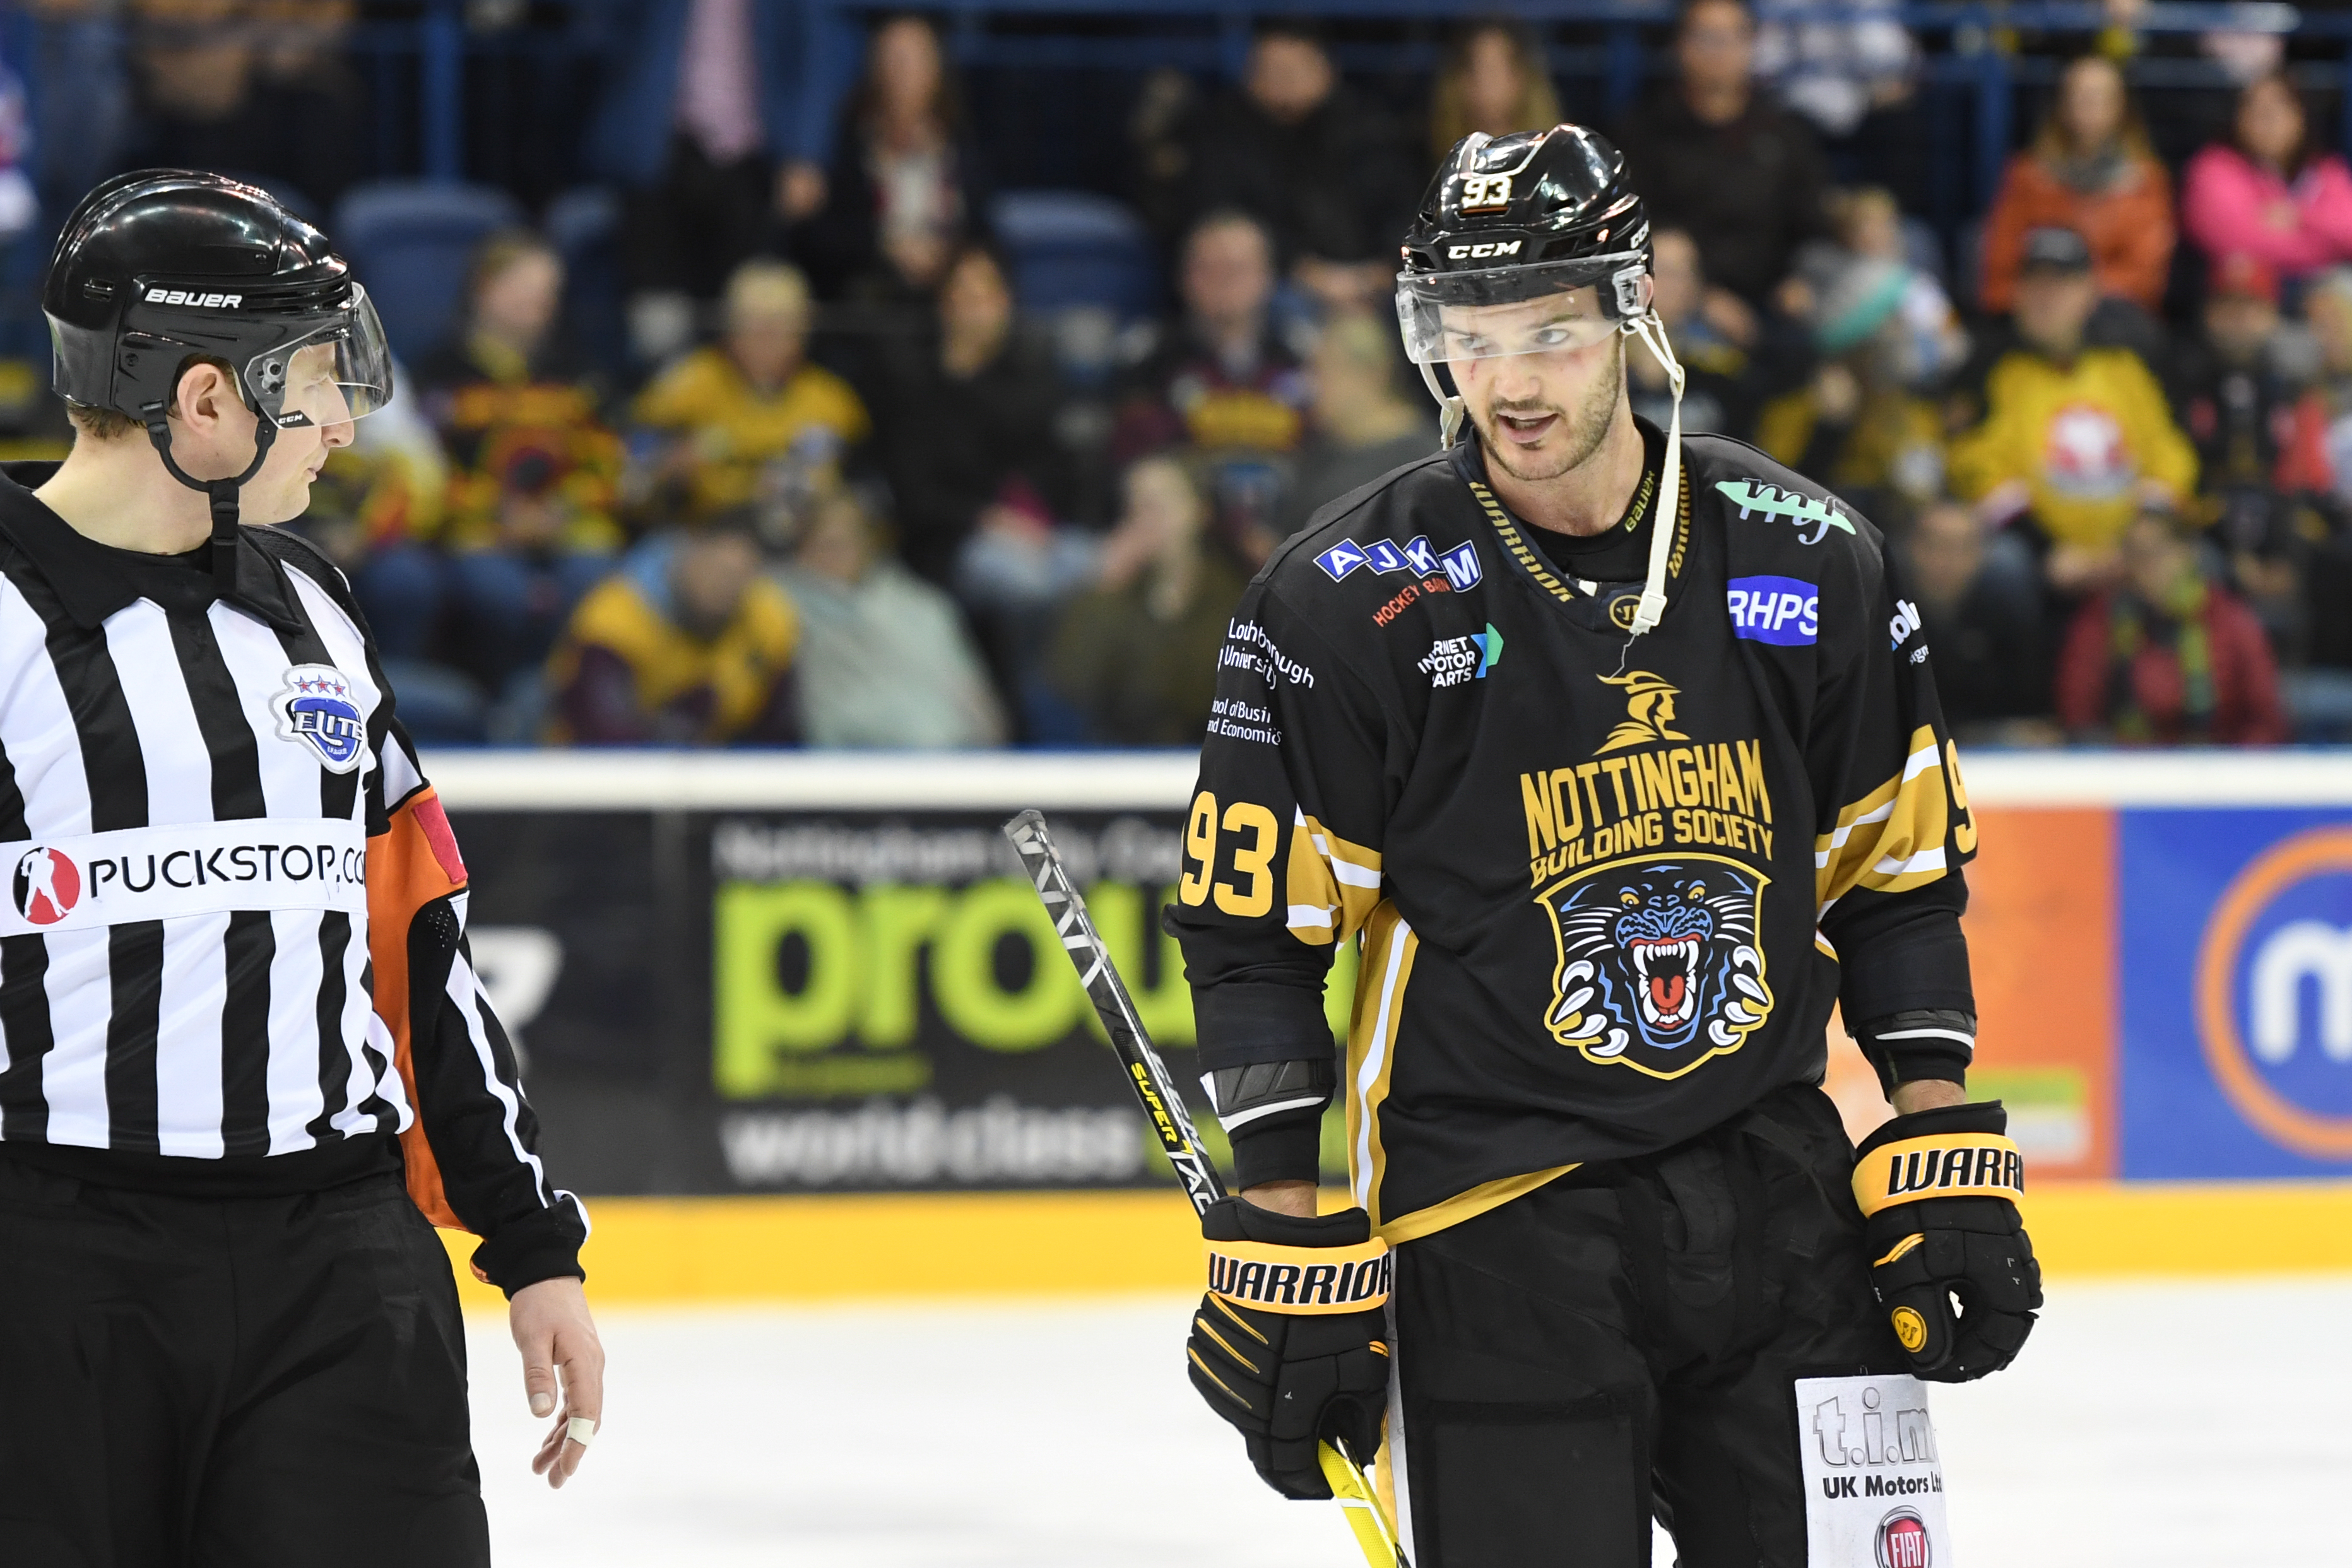 Rissling on Panthers TV - 19/02/19 Top Image